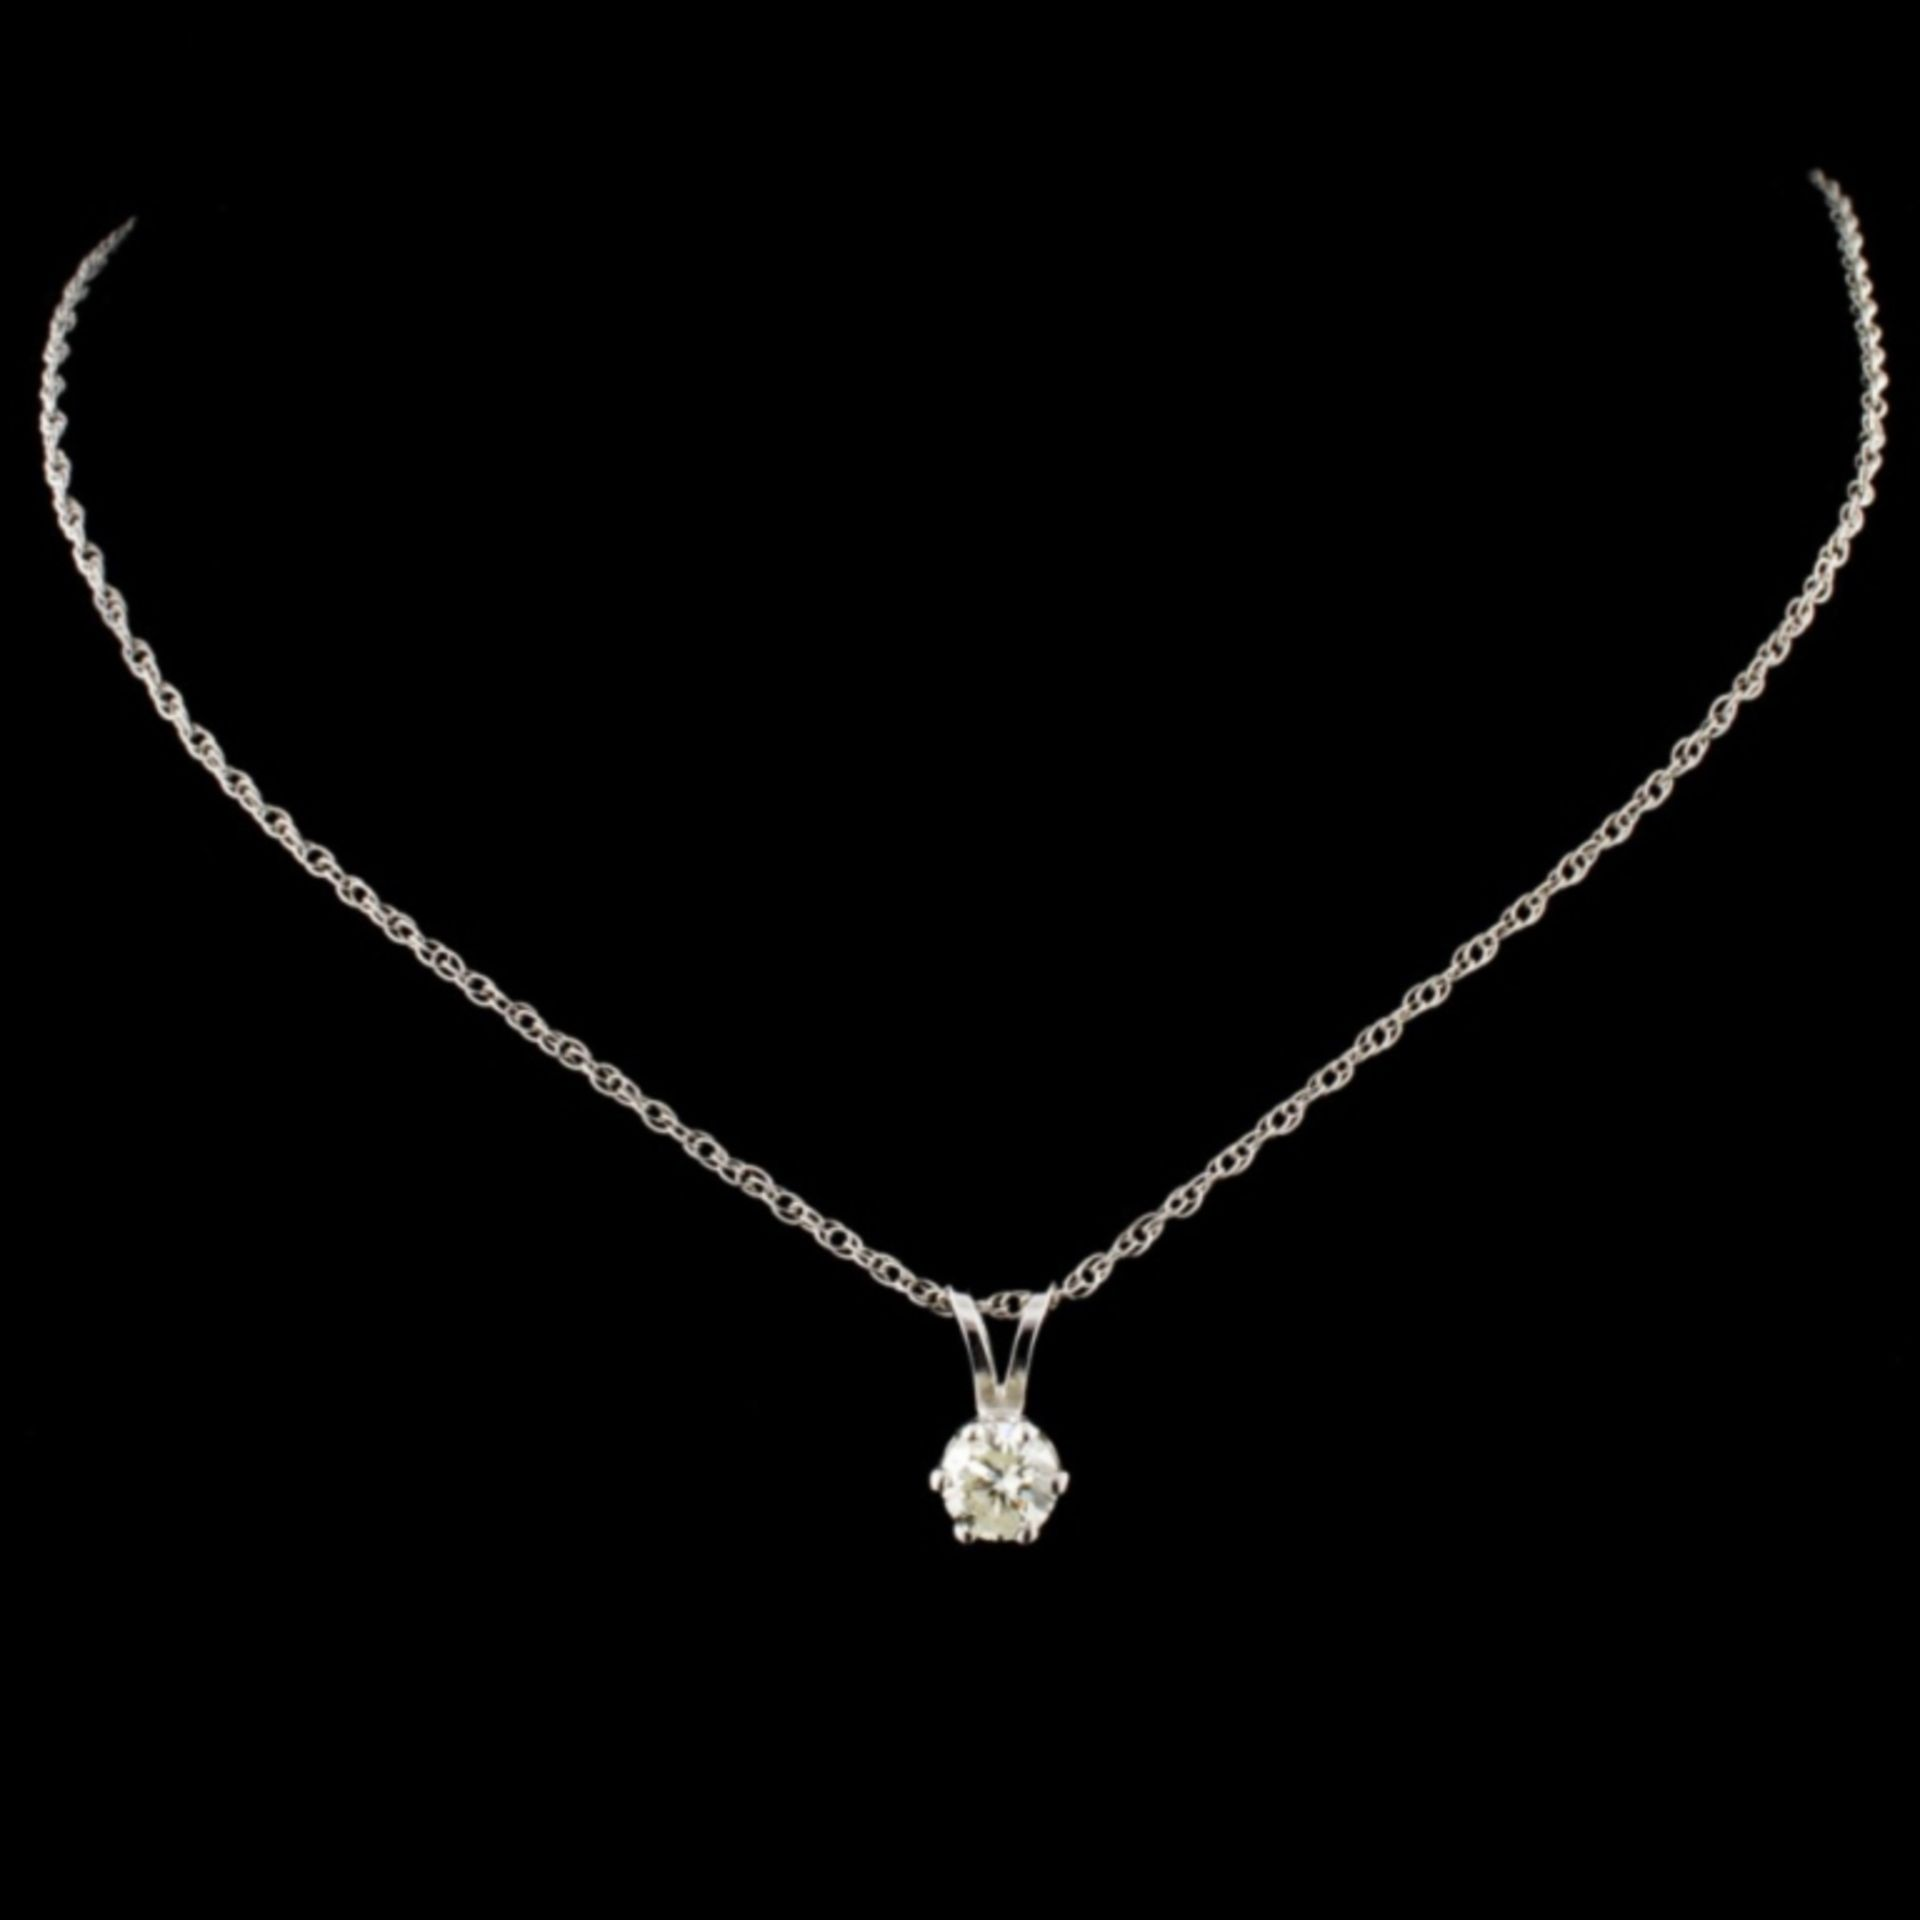 14K Gold 0.25ctw Diamond Pendant - Image 2 of 3